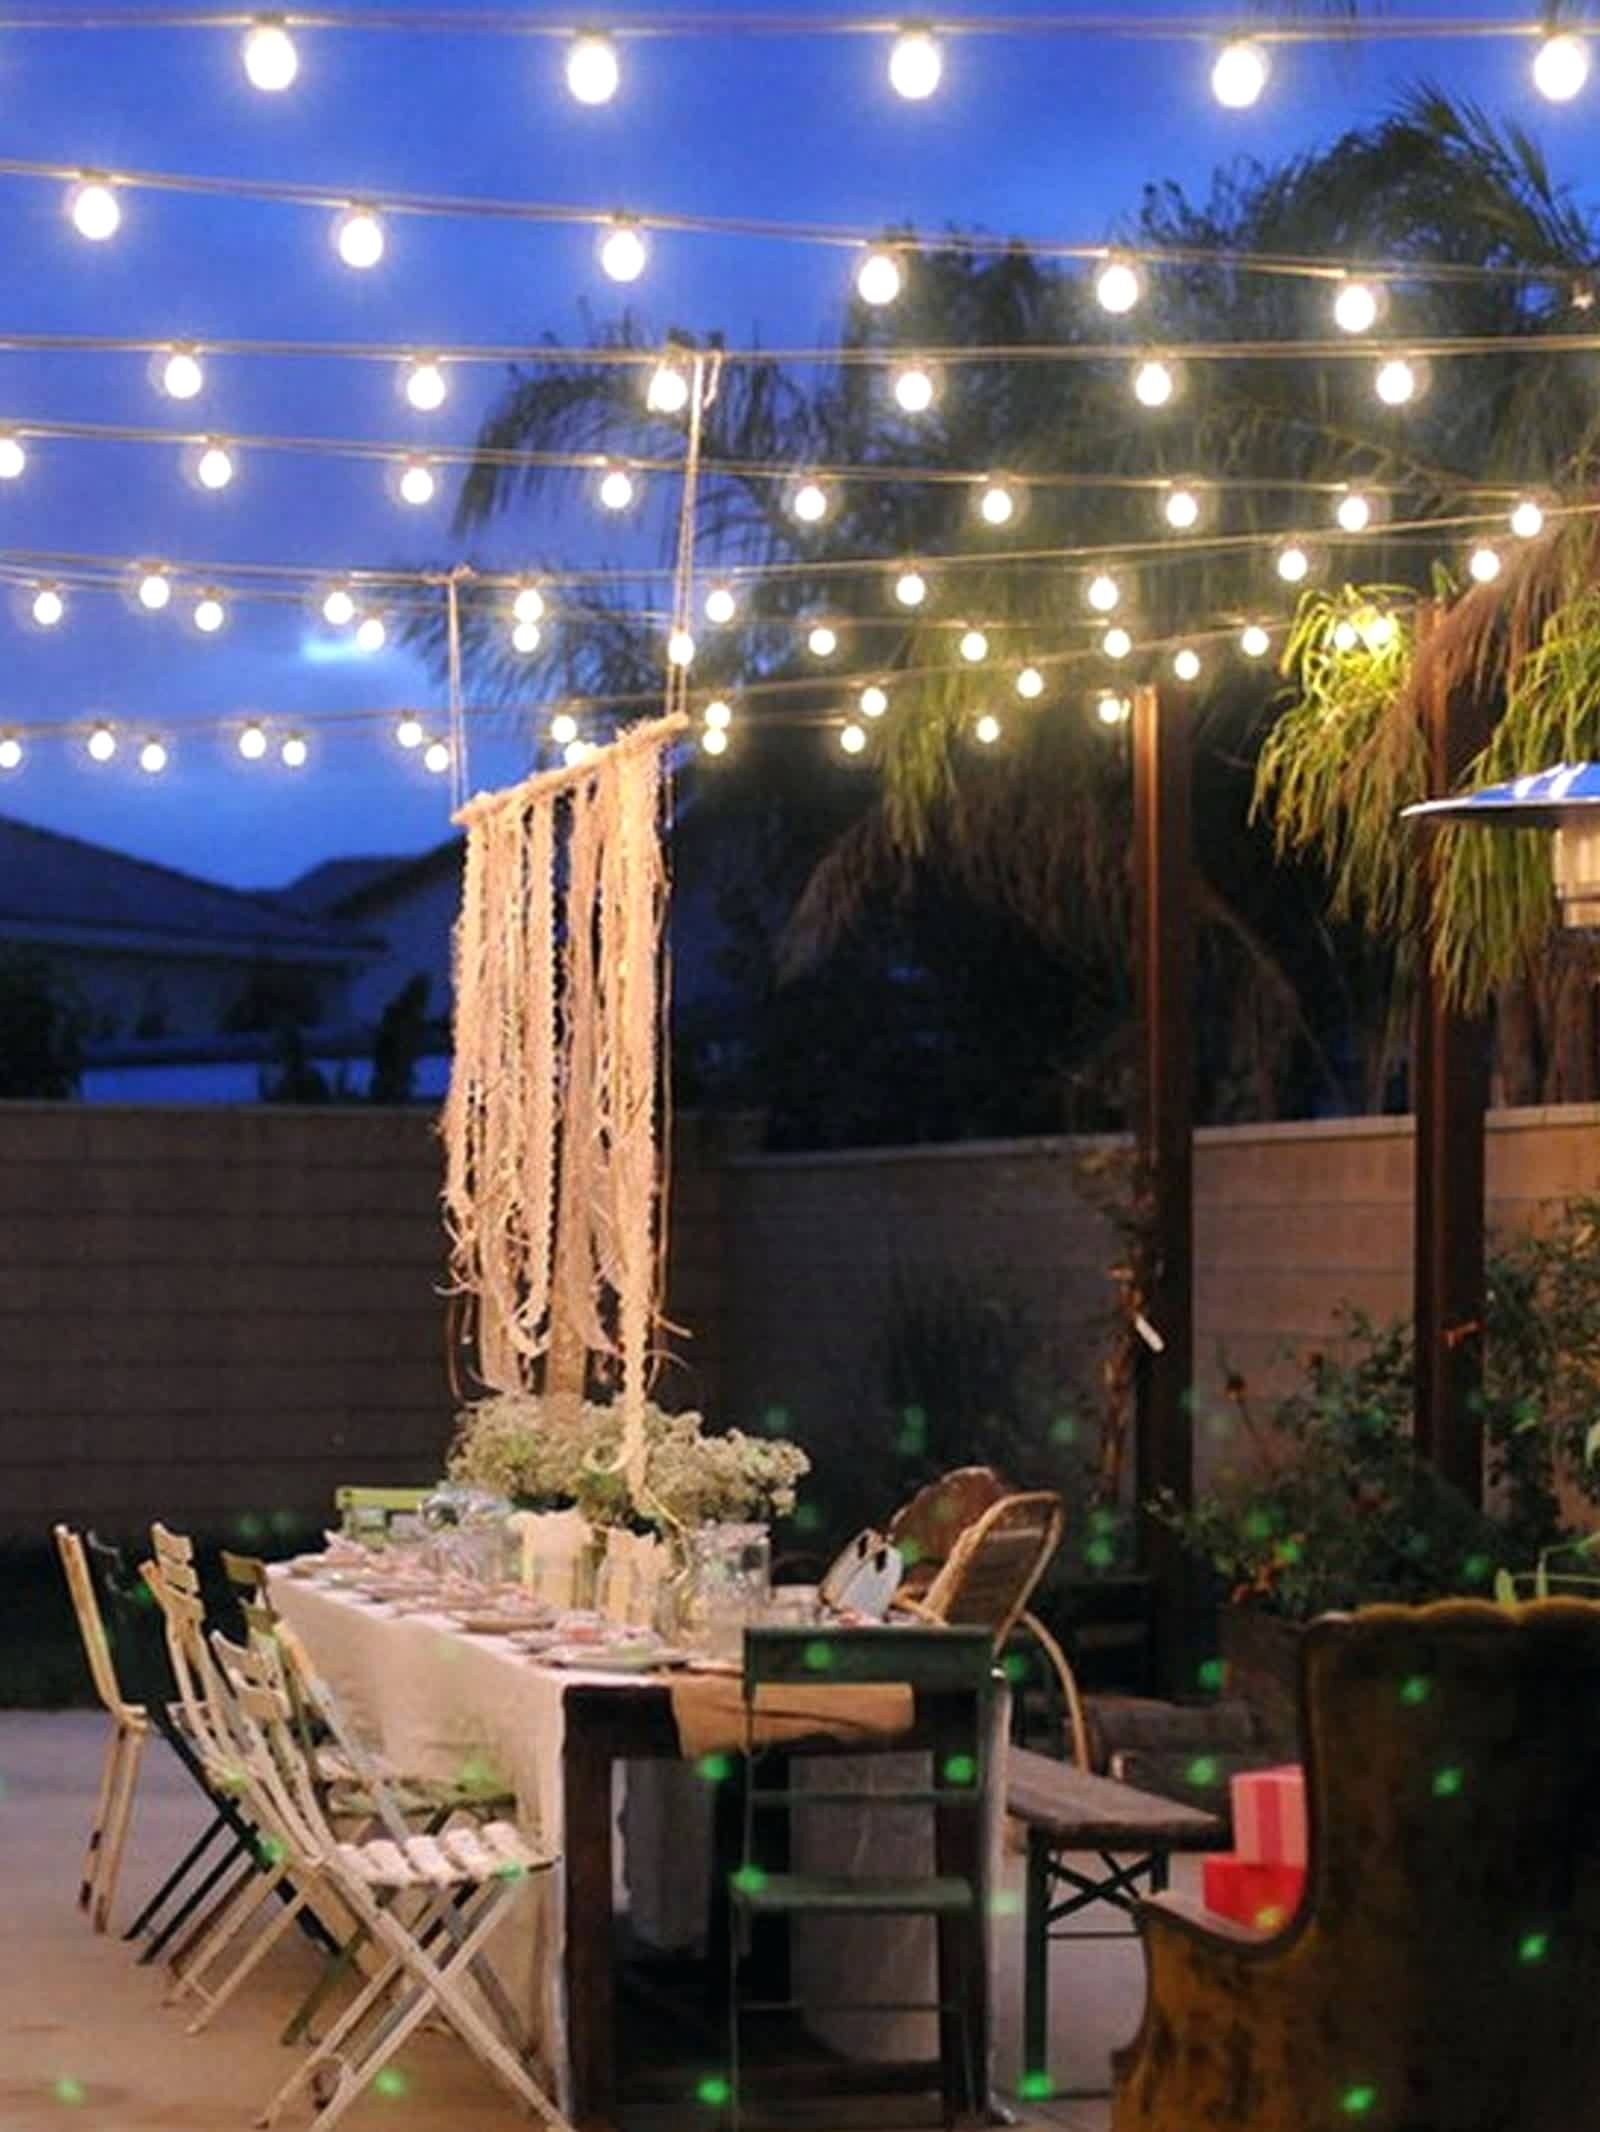 How To String Patio Lights Unique String Lights With Timer Regarding Outdoor String And Patio Lights (View 10 of 15)